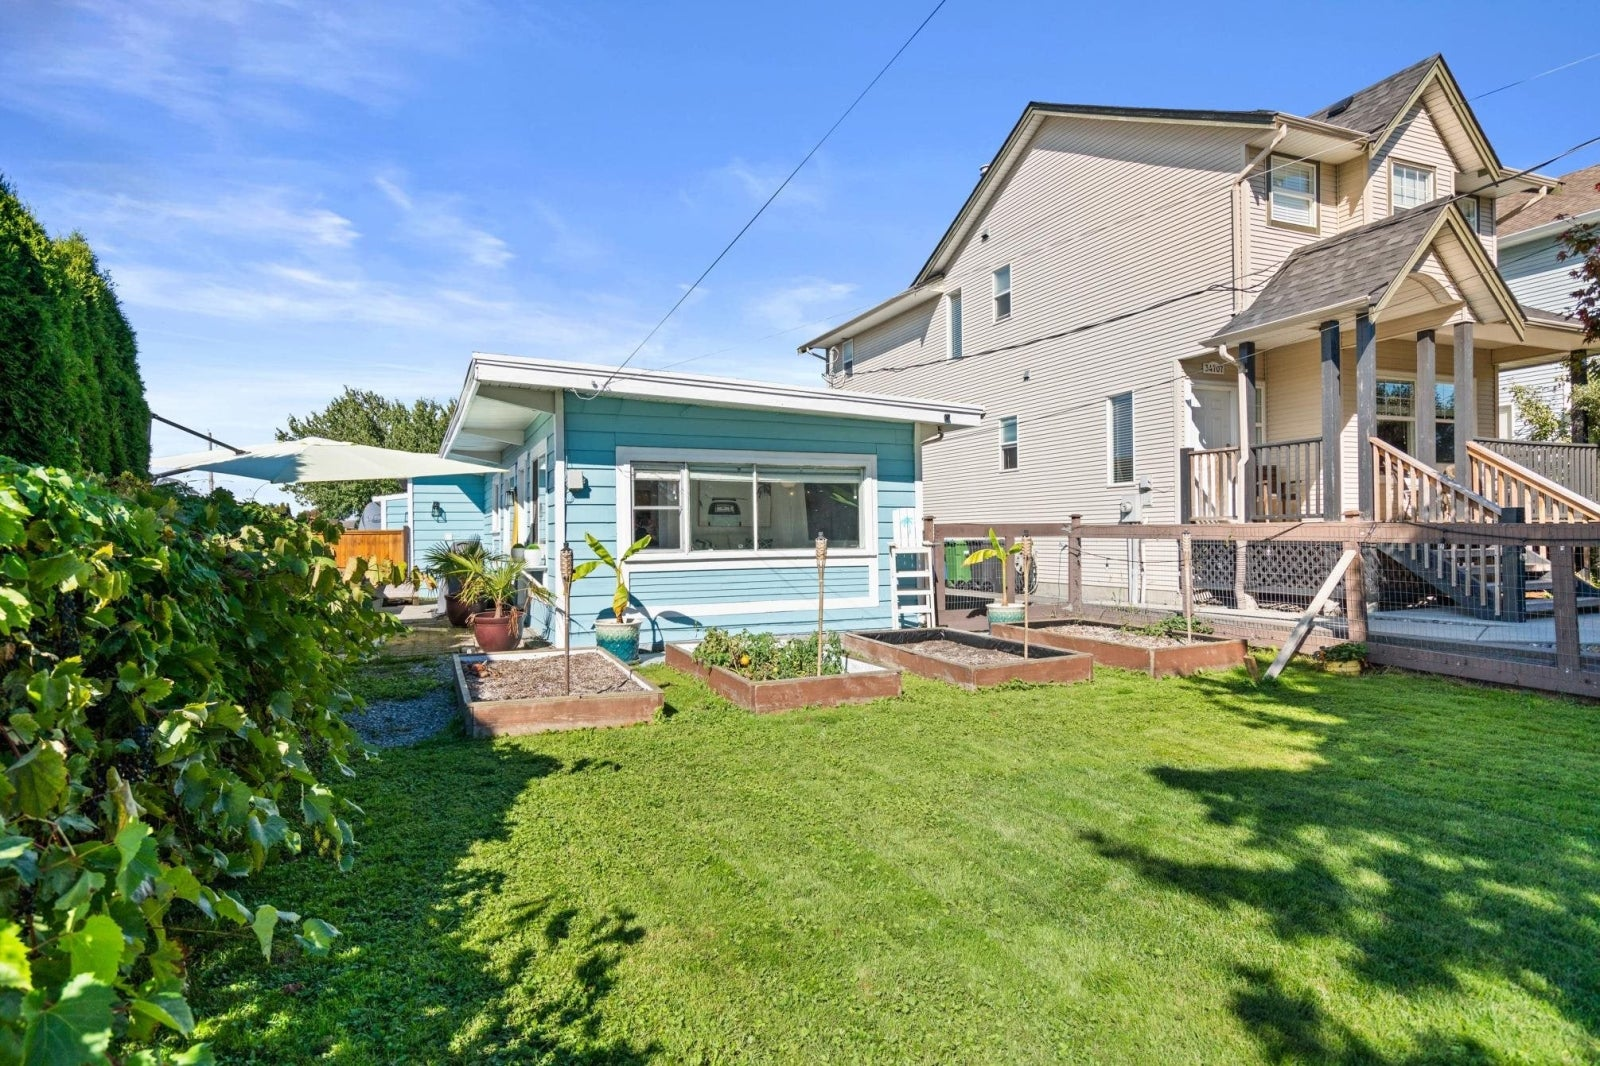 34705 4TH AVENUE - Abbotsford East House/Single Family for sale, 3 Bedrooms (R2620137) #30